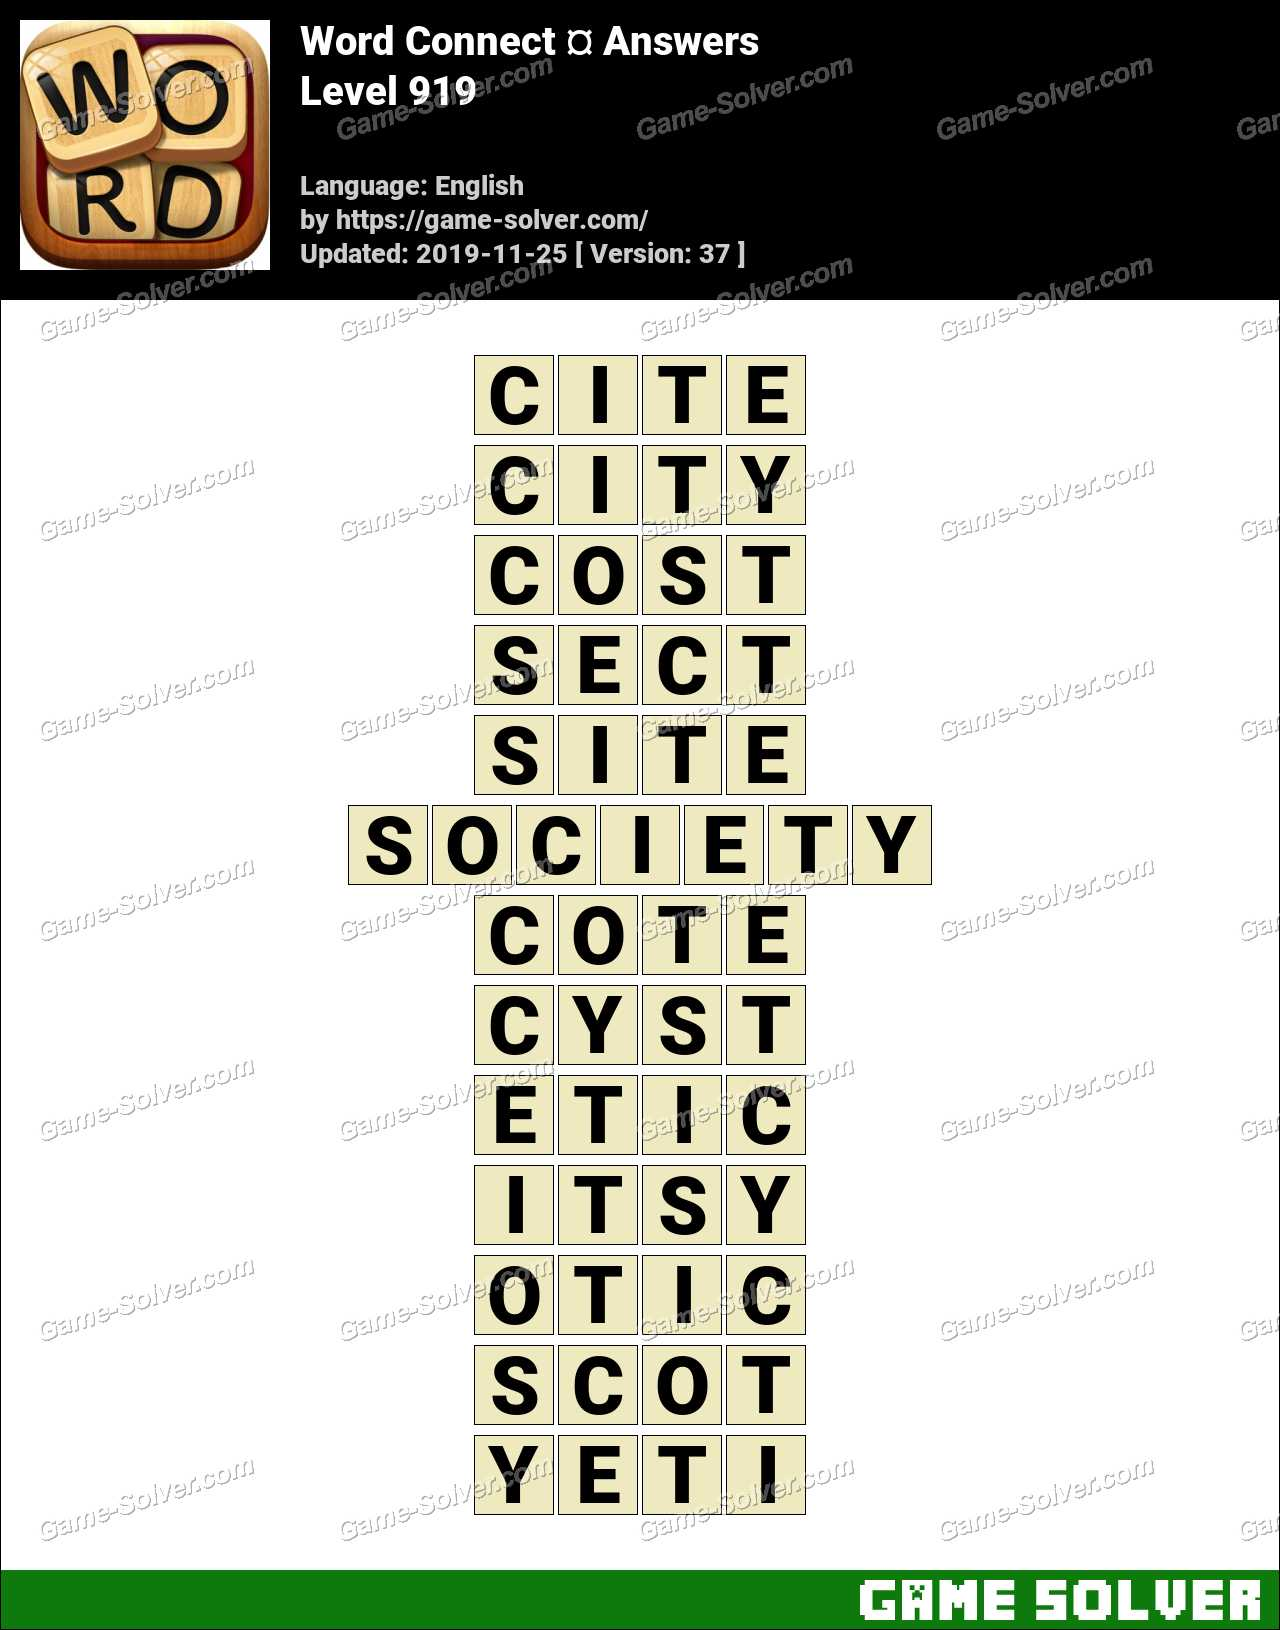 Word Connect Level 919 Answers